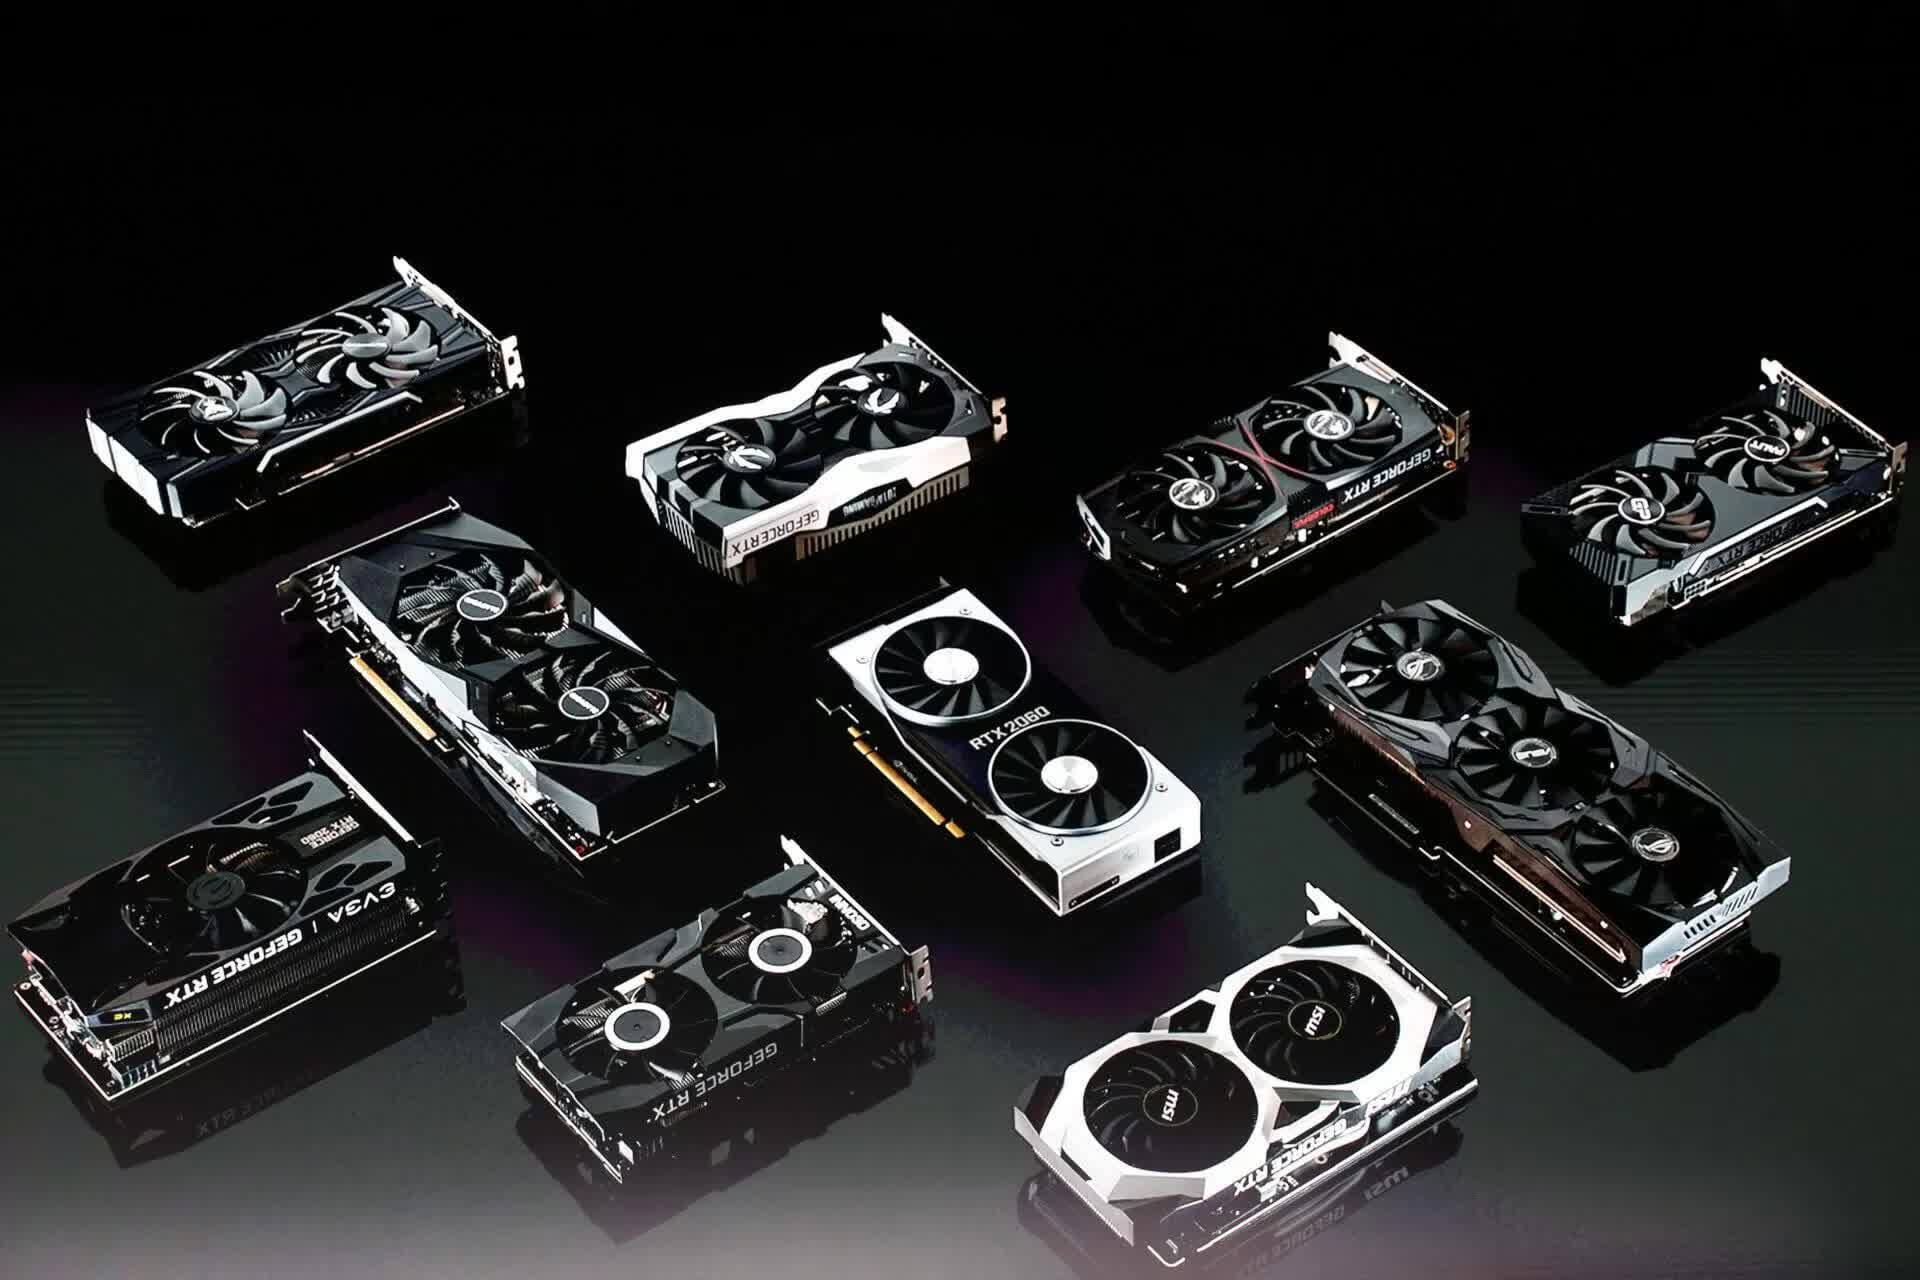 Retailers are taking more steps to stop graphics card scalpers